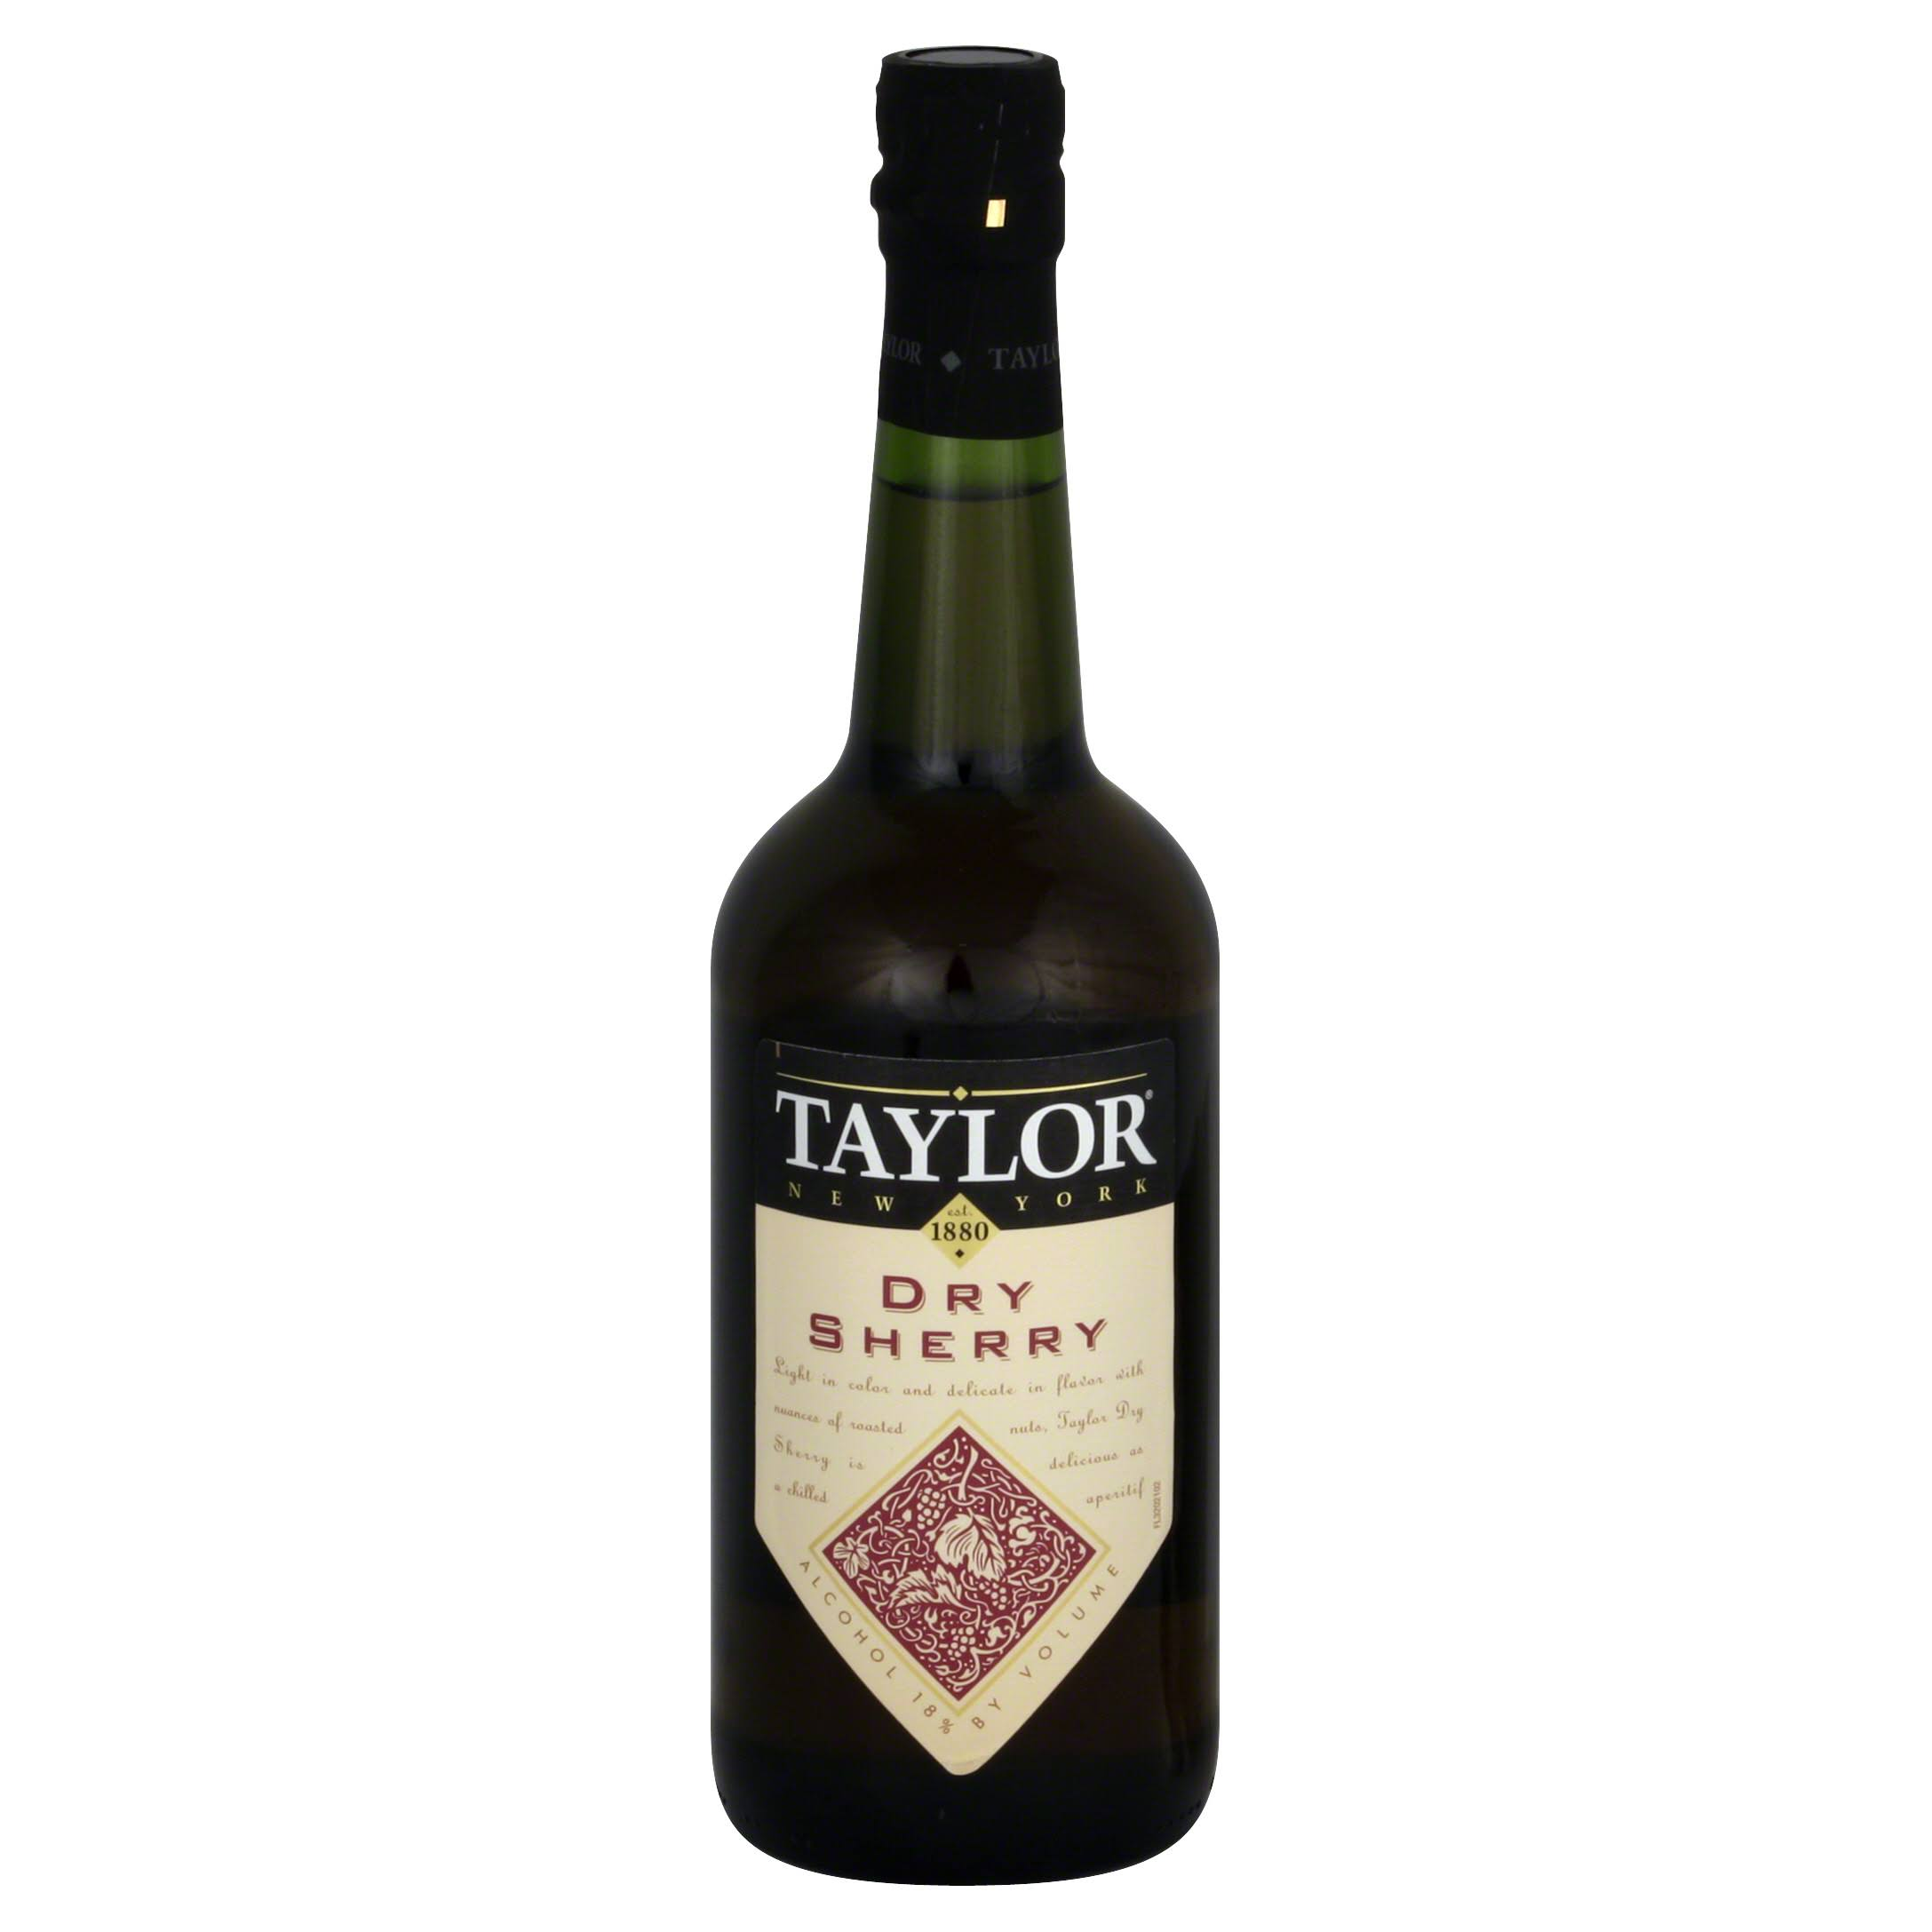 Taylor Dry Sherry - 750ml